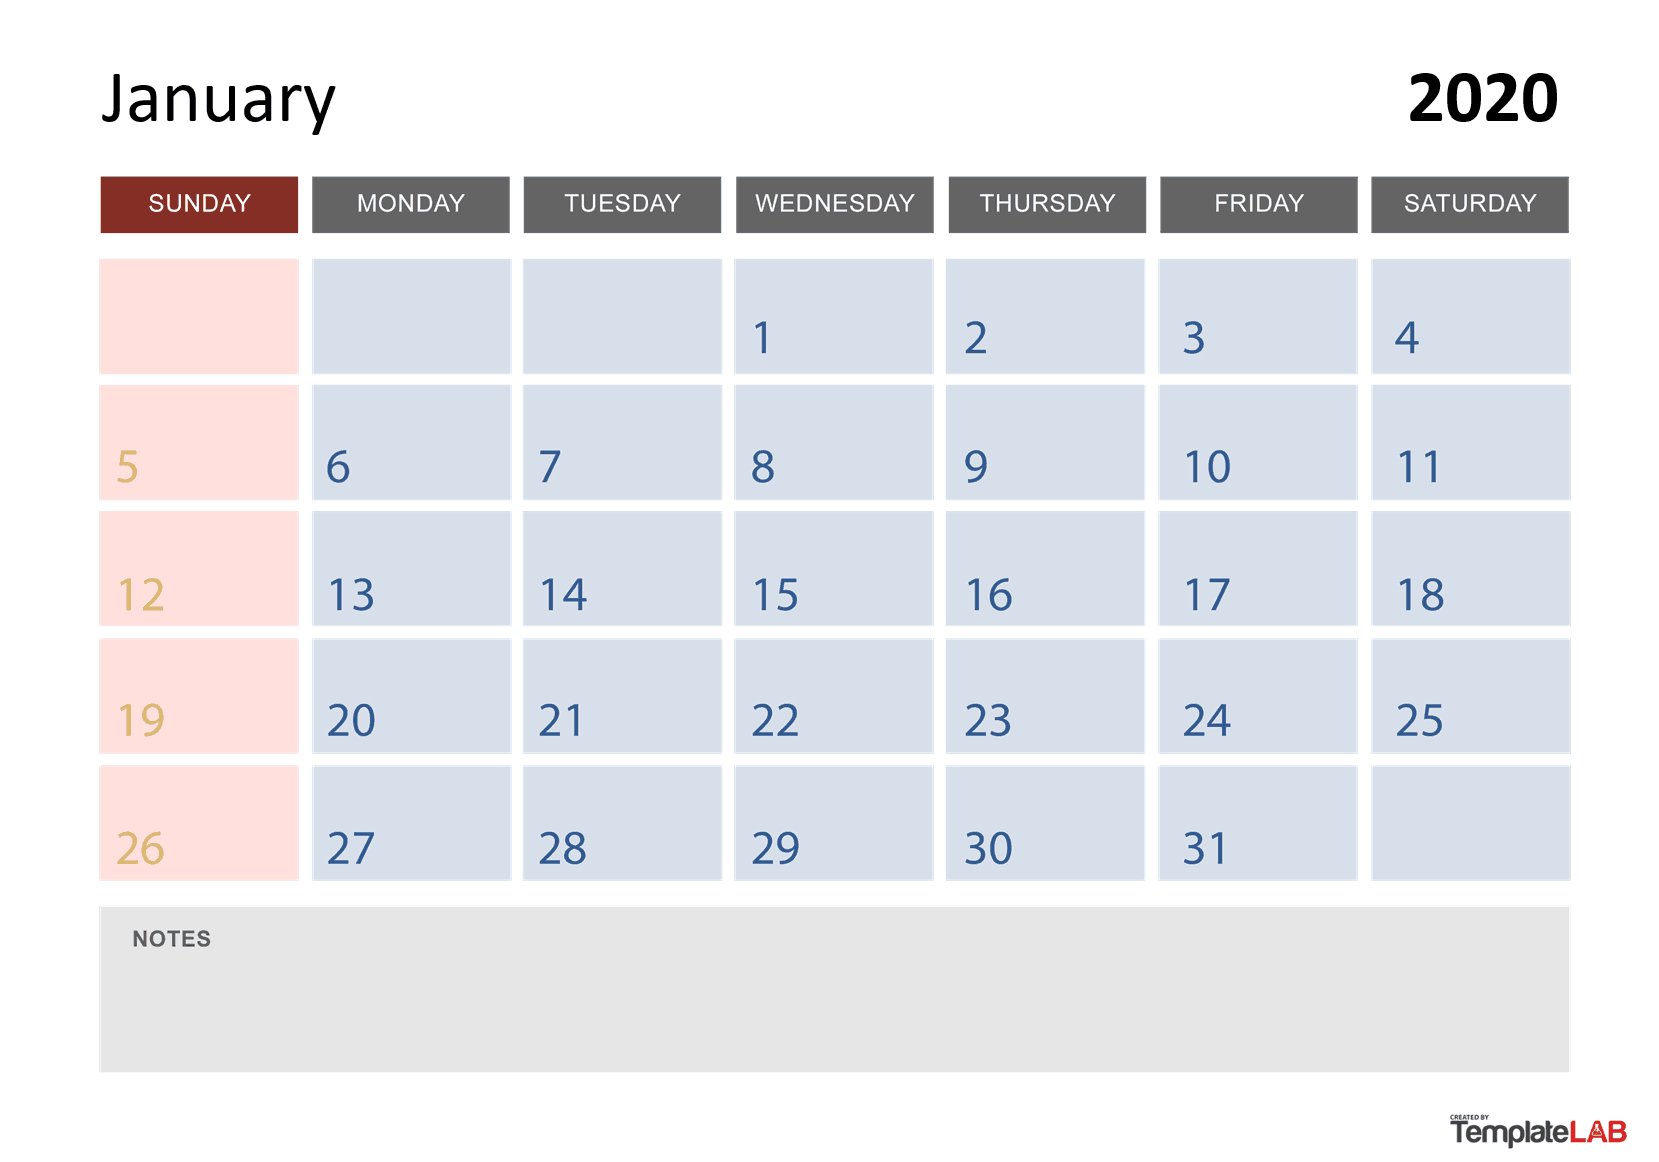 [%2020 Printable Calendars [Monthly, With Holidays, Yearly] ᐅ|2020 Calendar With Notes|2020 Calendar With Notes%]